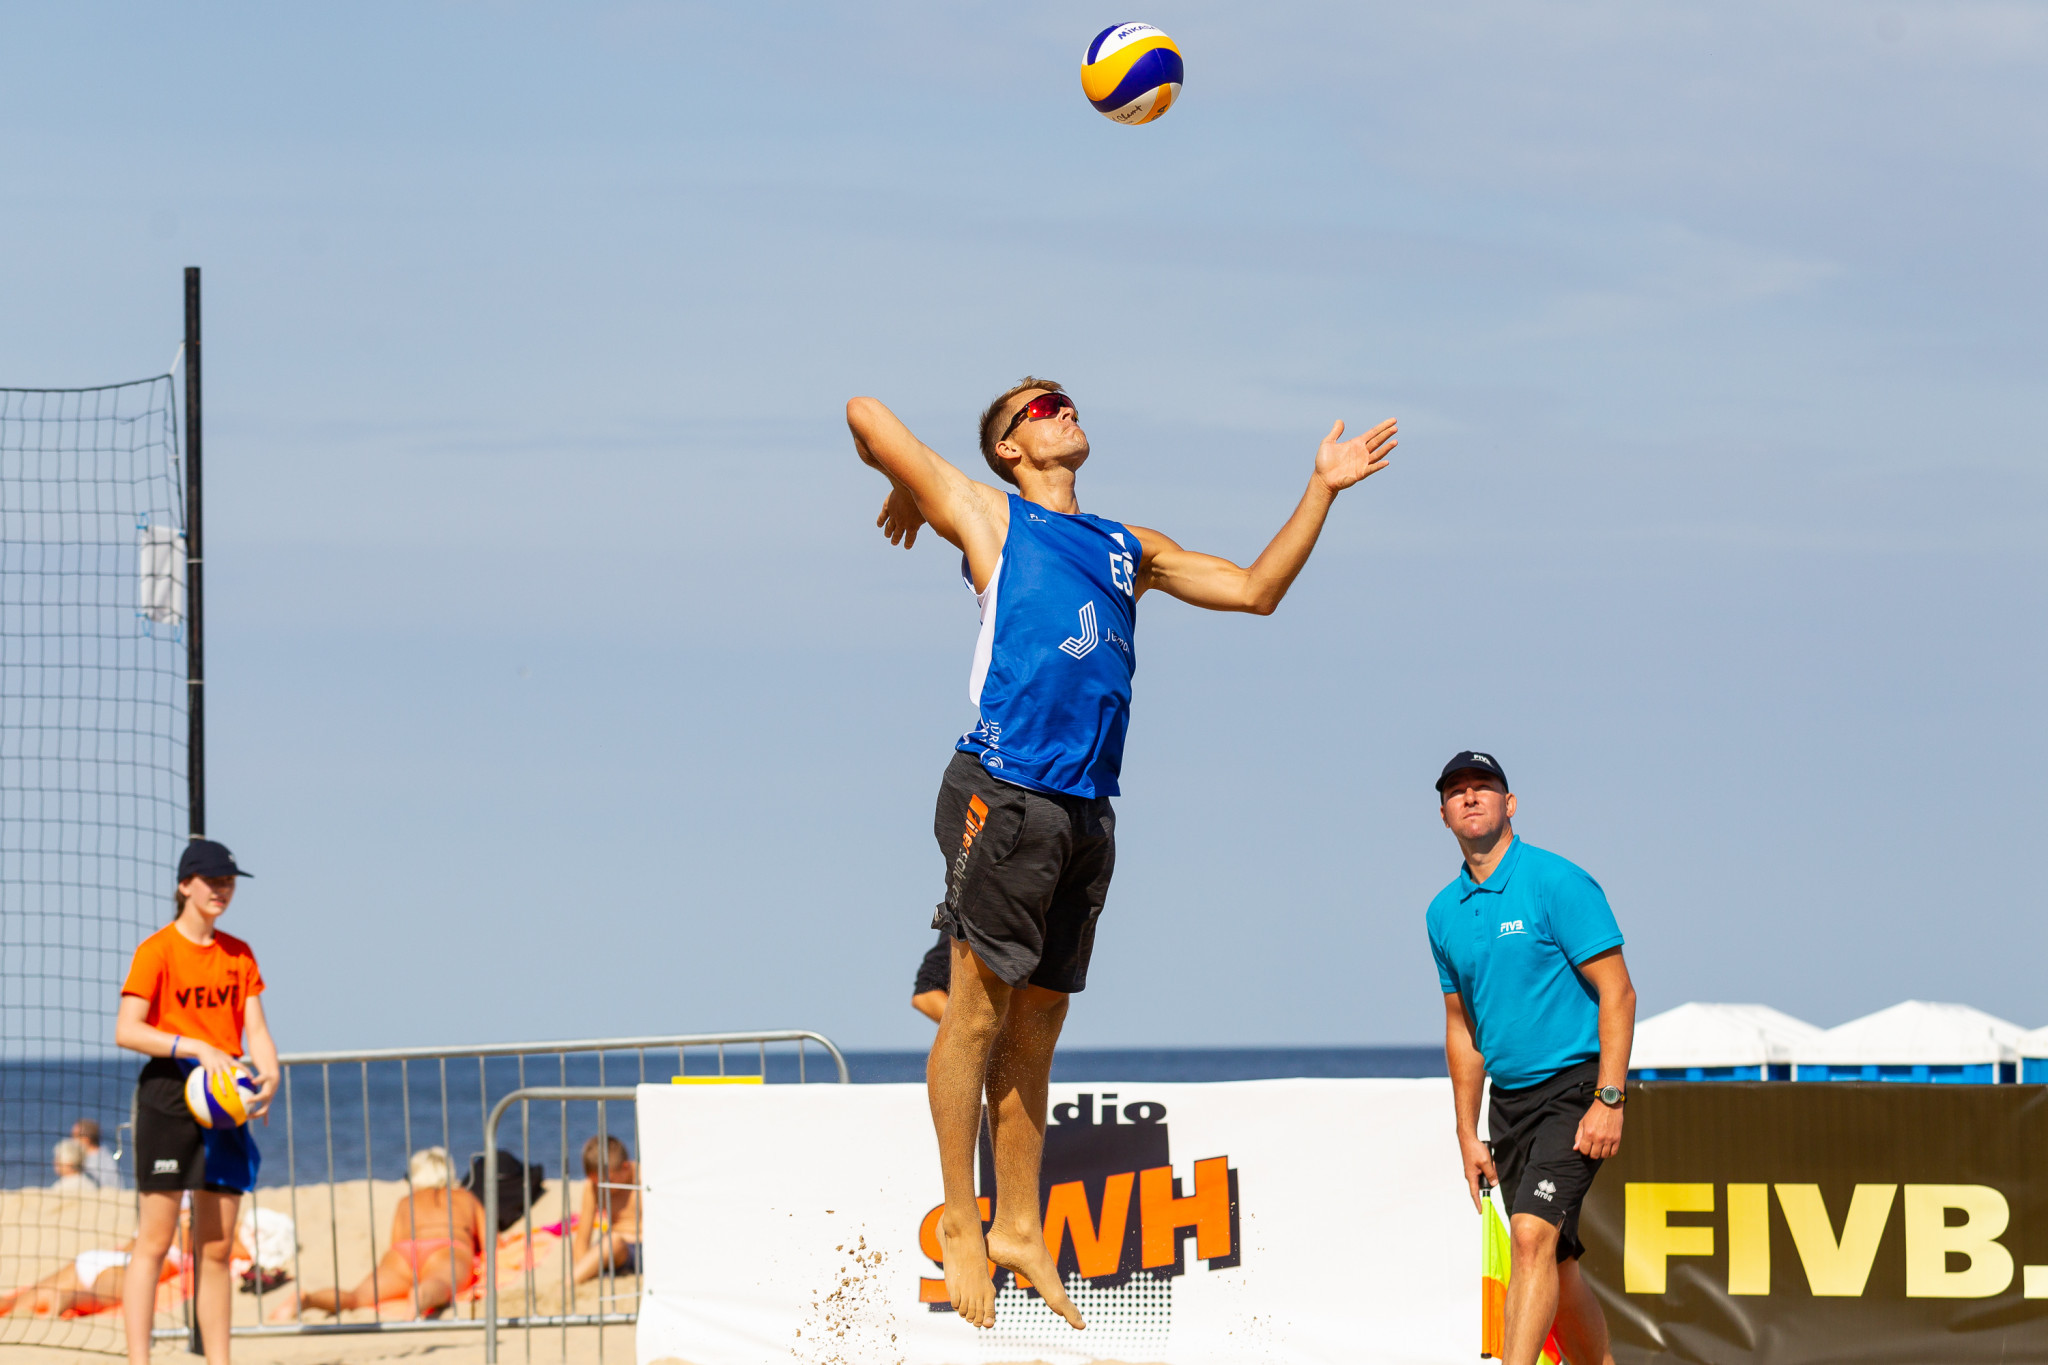 Estonians Kusti Nõlvak and Mart Tiisaar reached the semi-finals with victory against Stafford Slick and William Allen from the United States ©FIVB